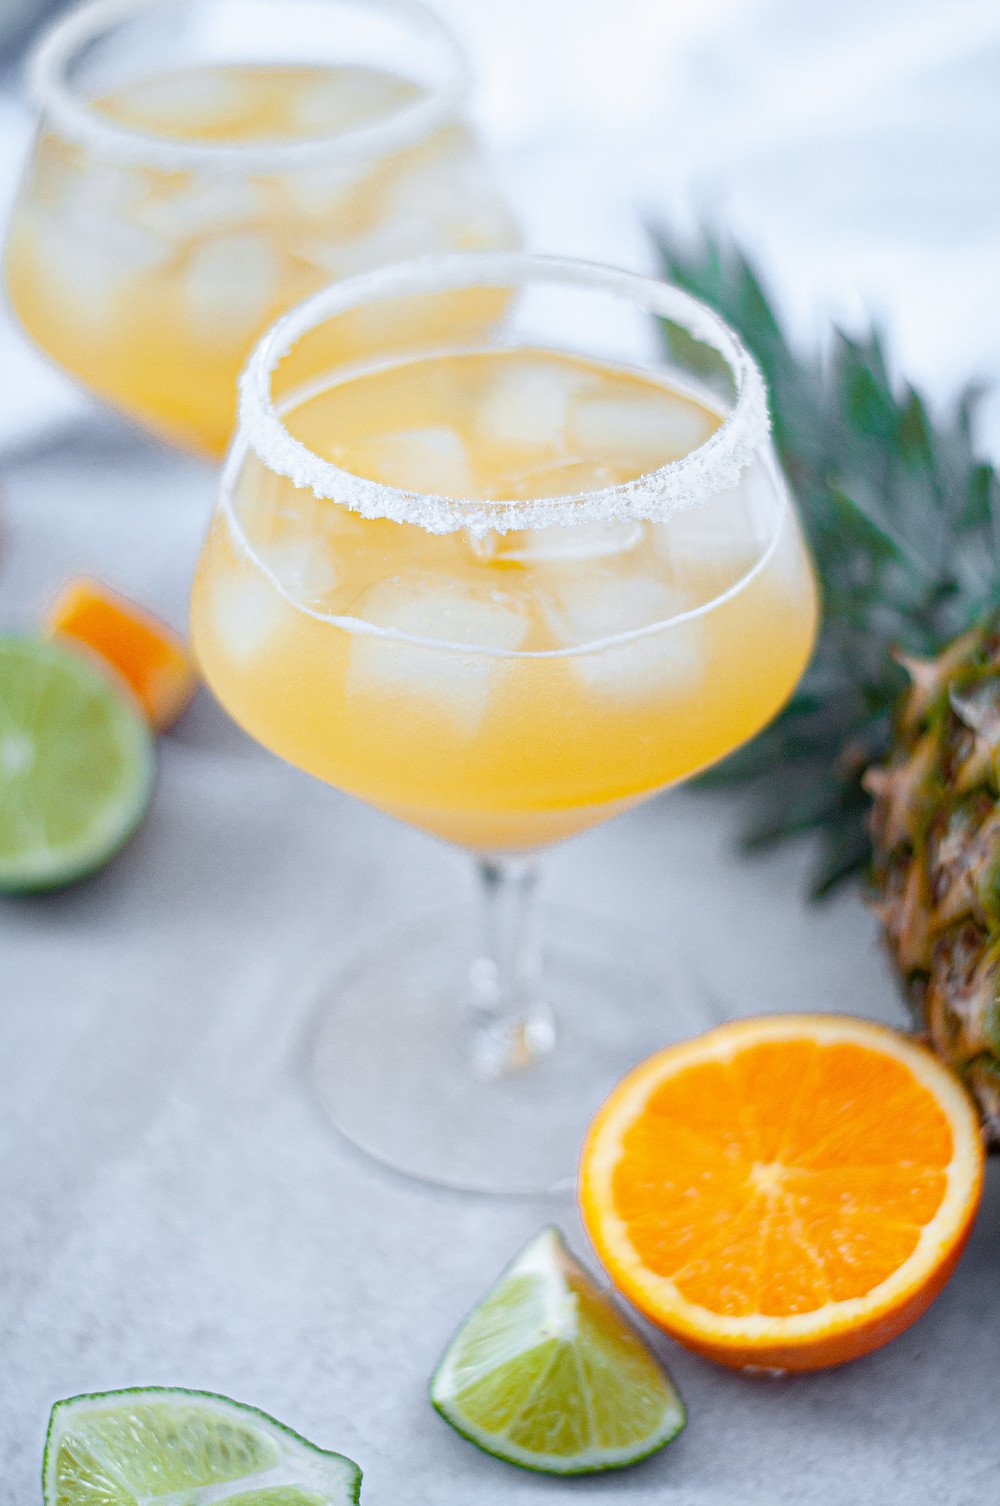 Two glasses with salted rims filled with this skinny pineapple margarita recipe and ice. Surrounded by a pineapple, orange slices, and lime slices.